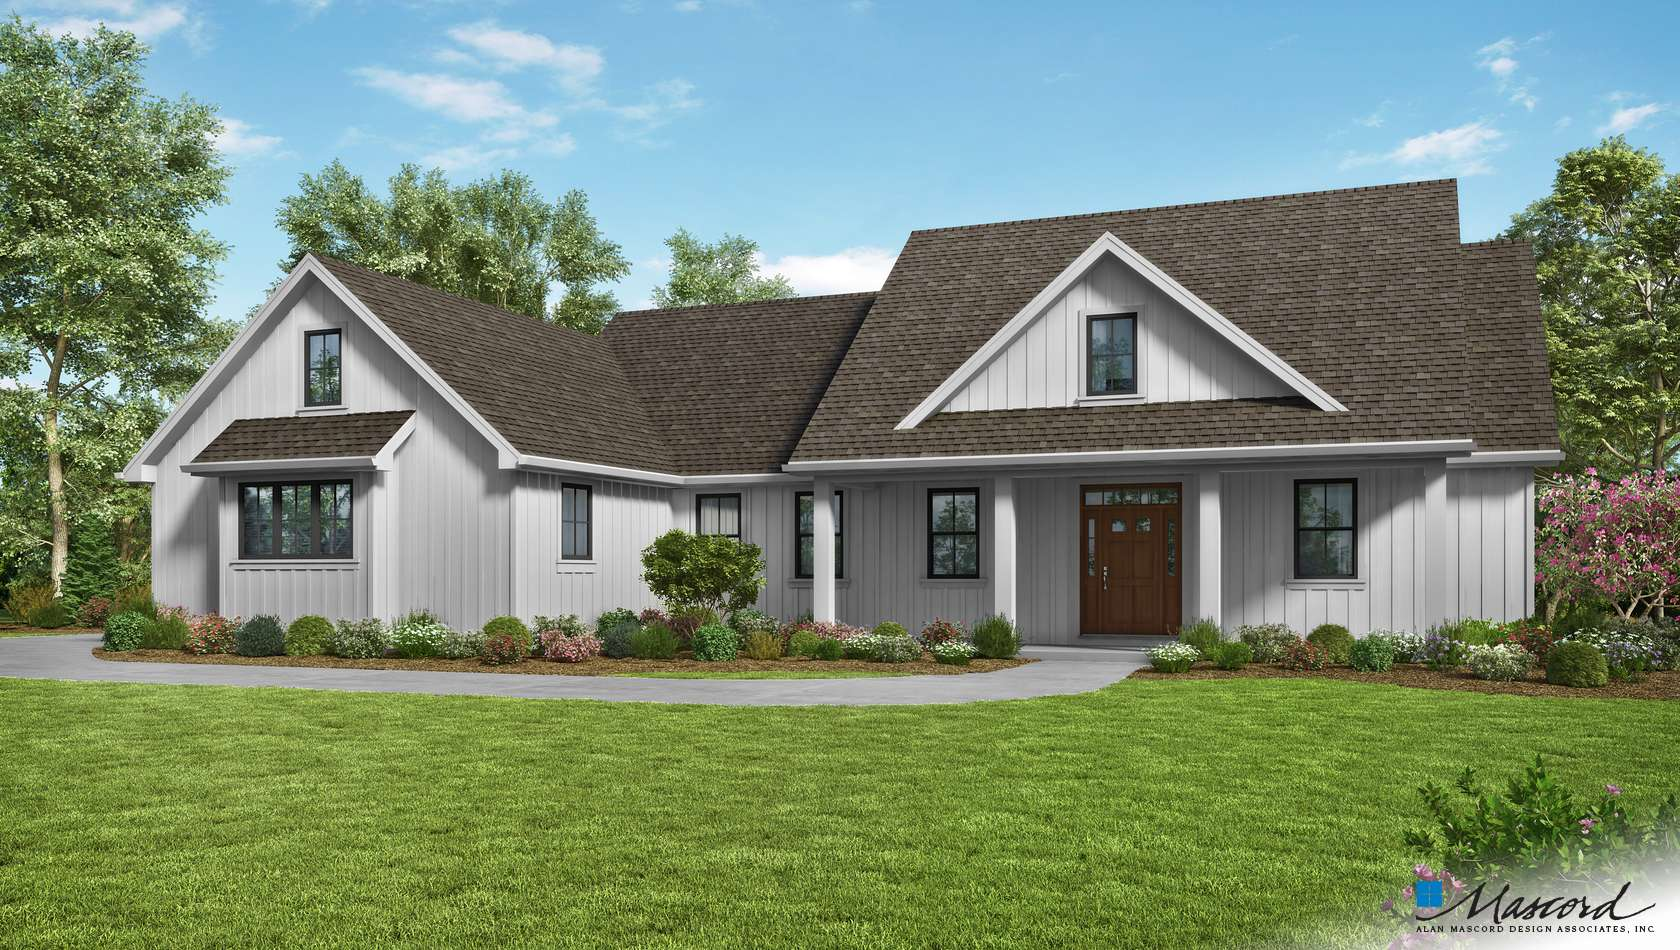 Main image for house plan 21151: The  Cary